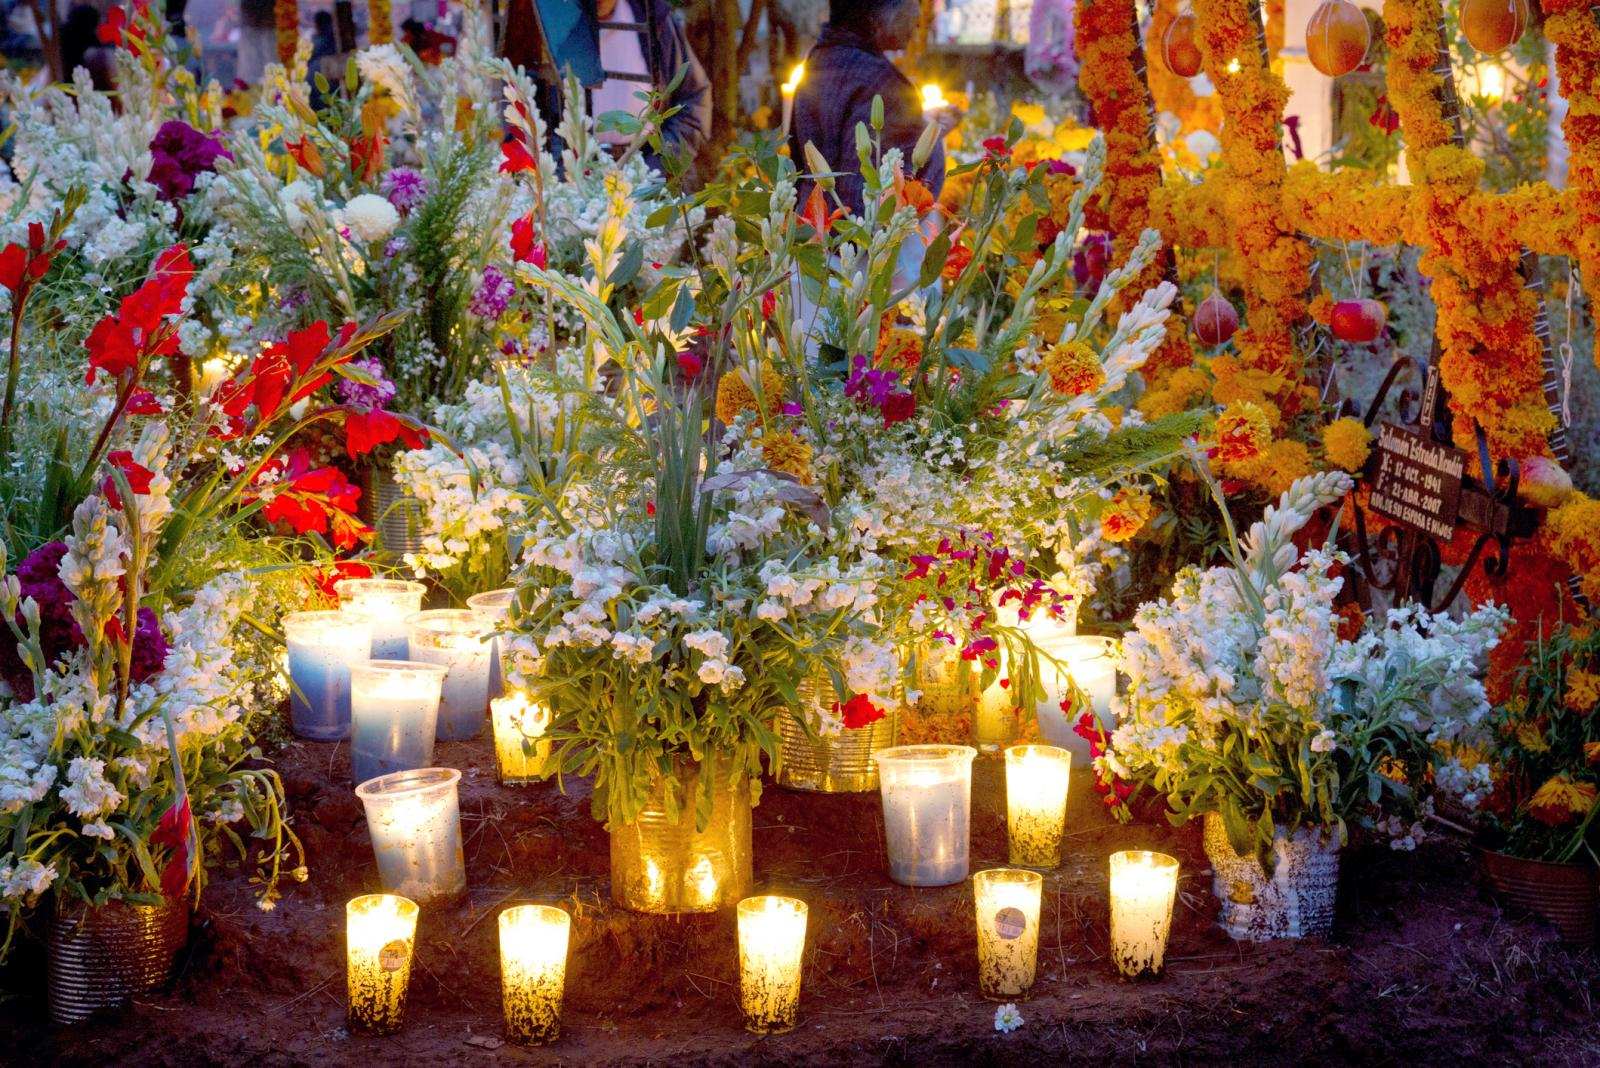 The Day of the Dead is celebrated in the towns and villages